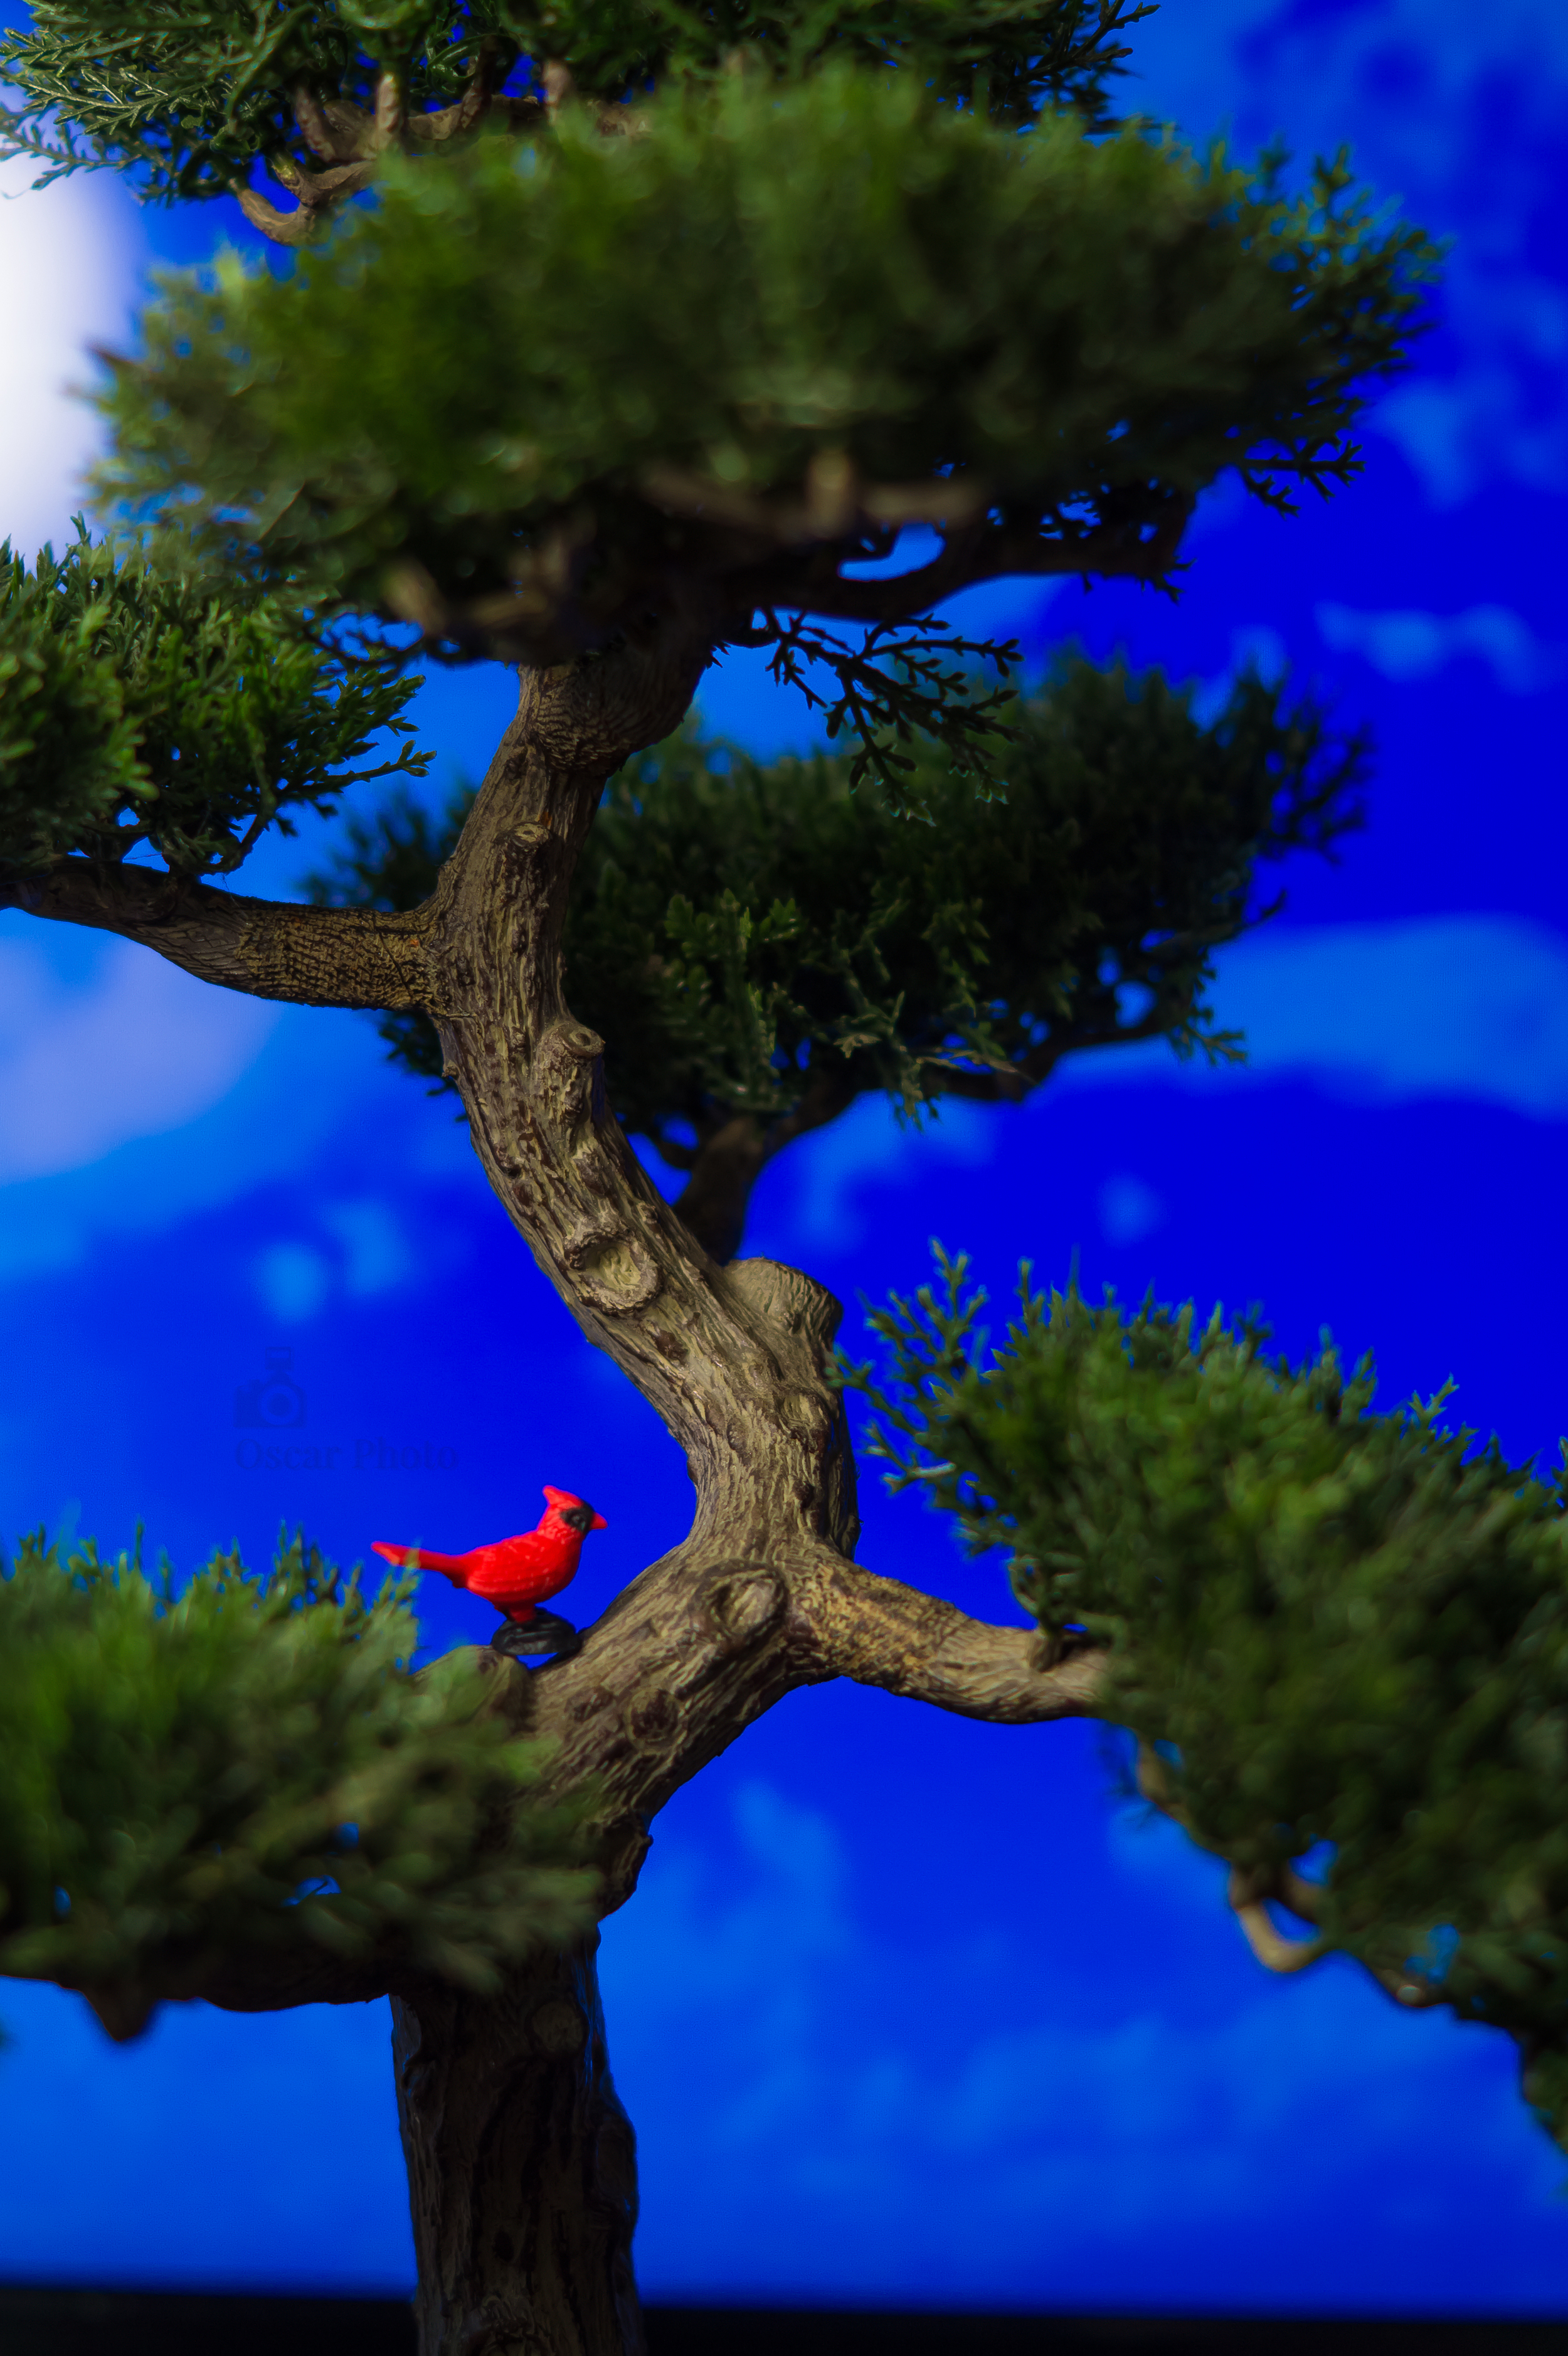 Cardenal on a tree